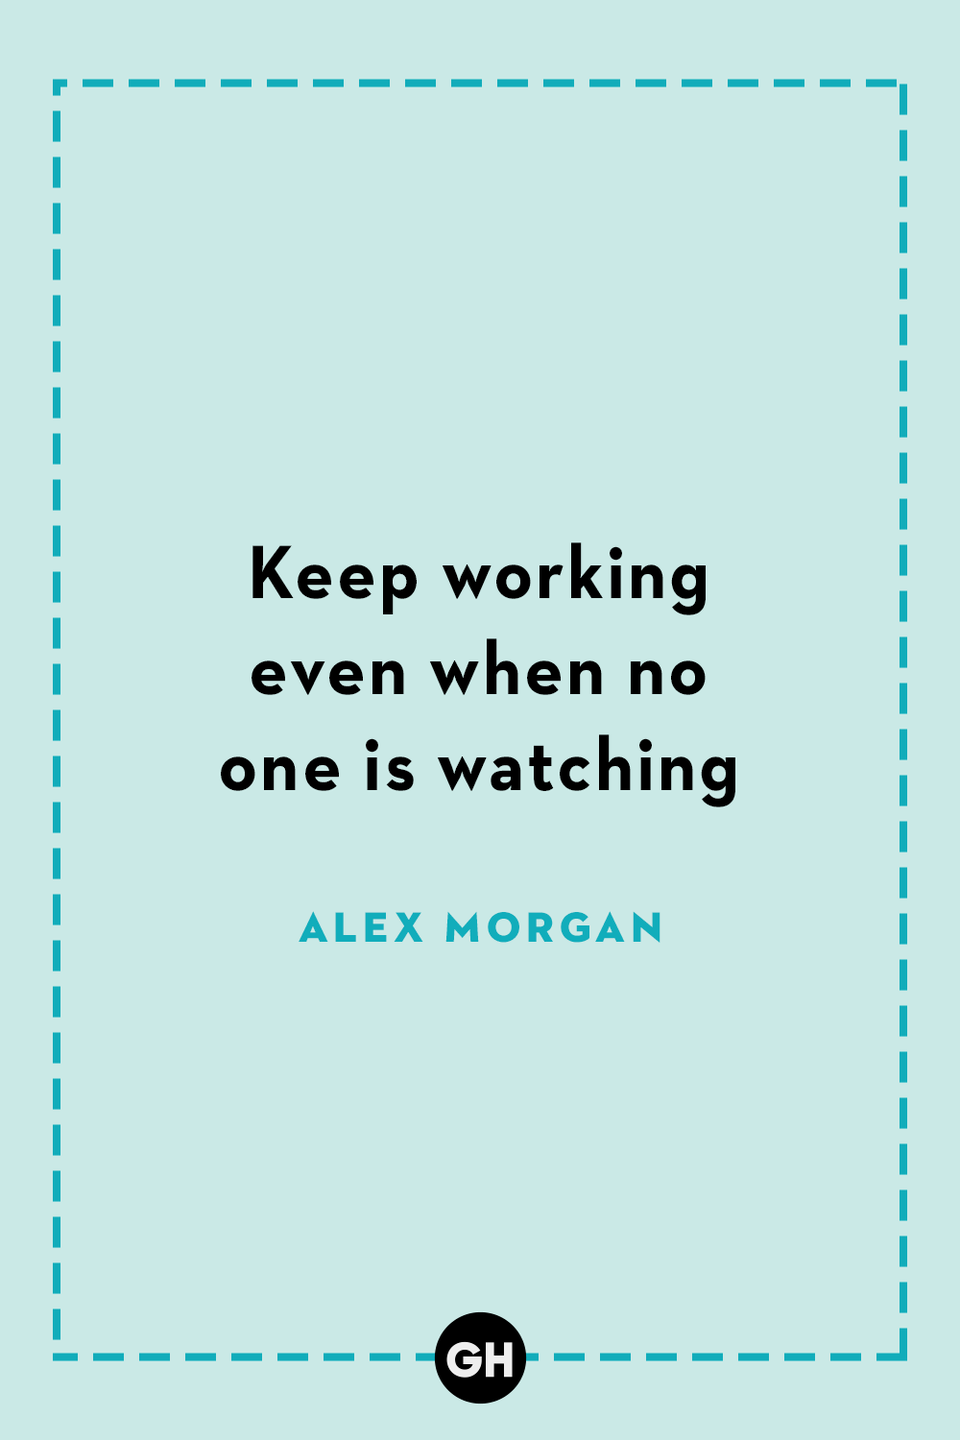 <p>Keep working even when no one is watching.</p>